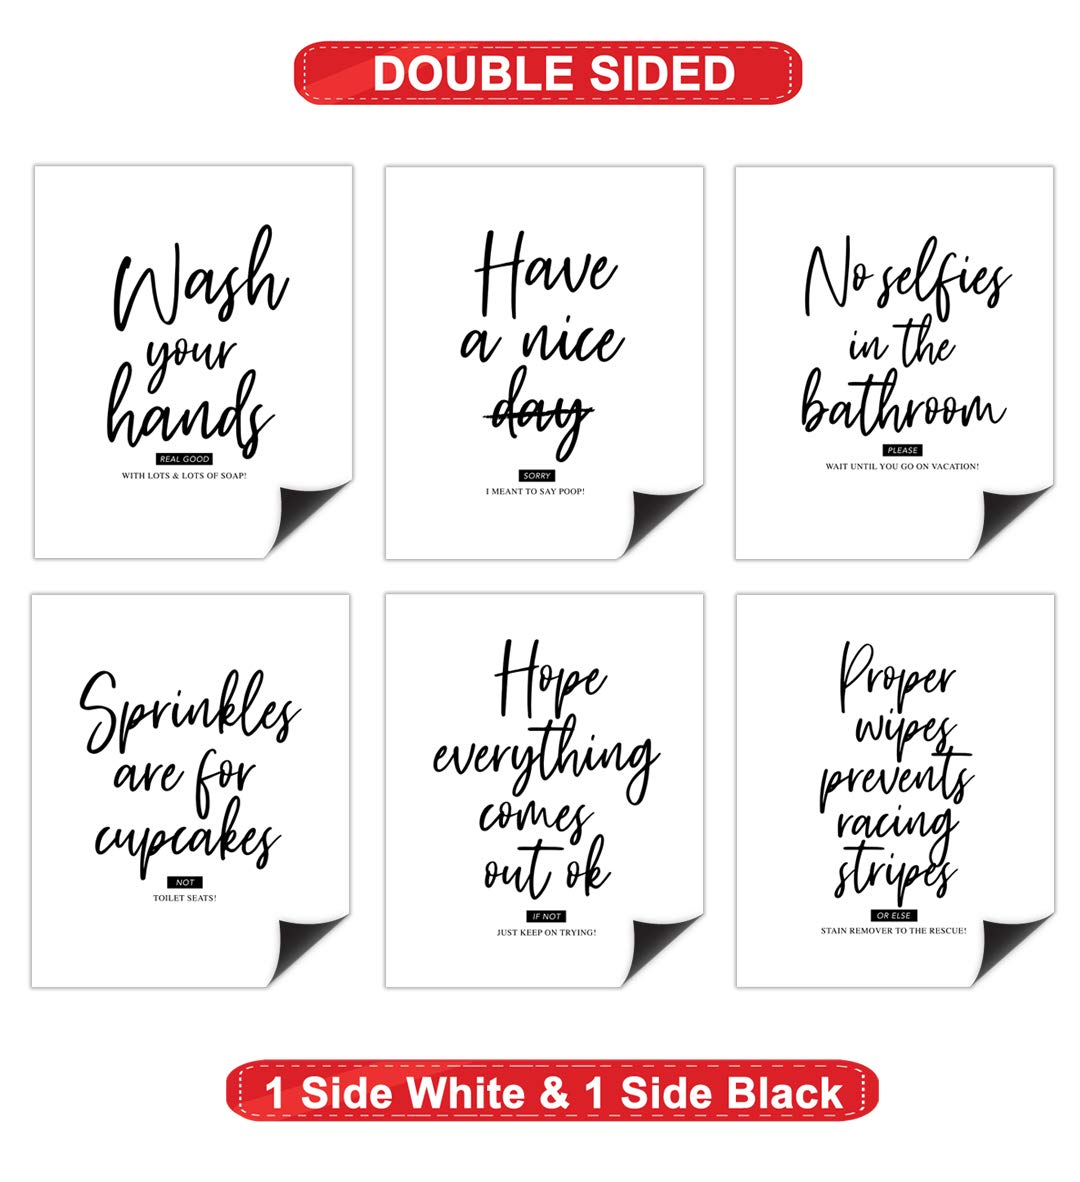 Double Sided Bathroom Decor Unframed Great Inspirational Gift Home Wall Art Prints Set of 6 Funny Bathroom Quotes and Sayings Rules Posters Modern Typography Toilet Toilet Humor